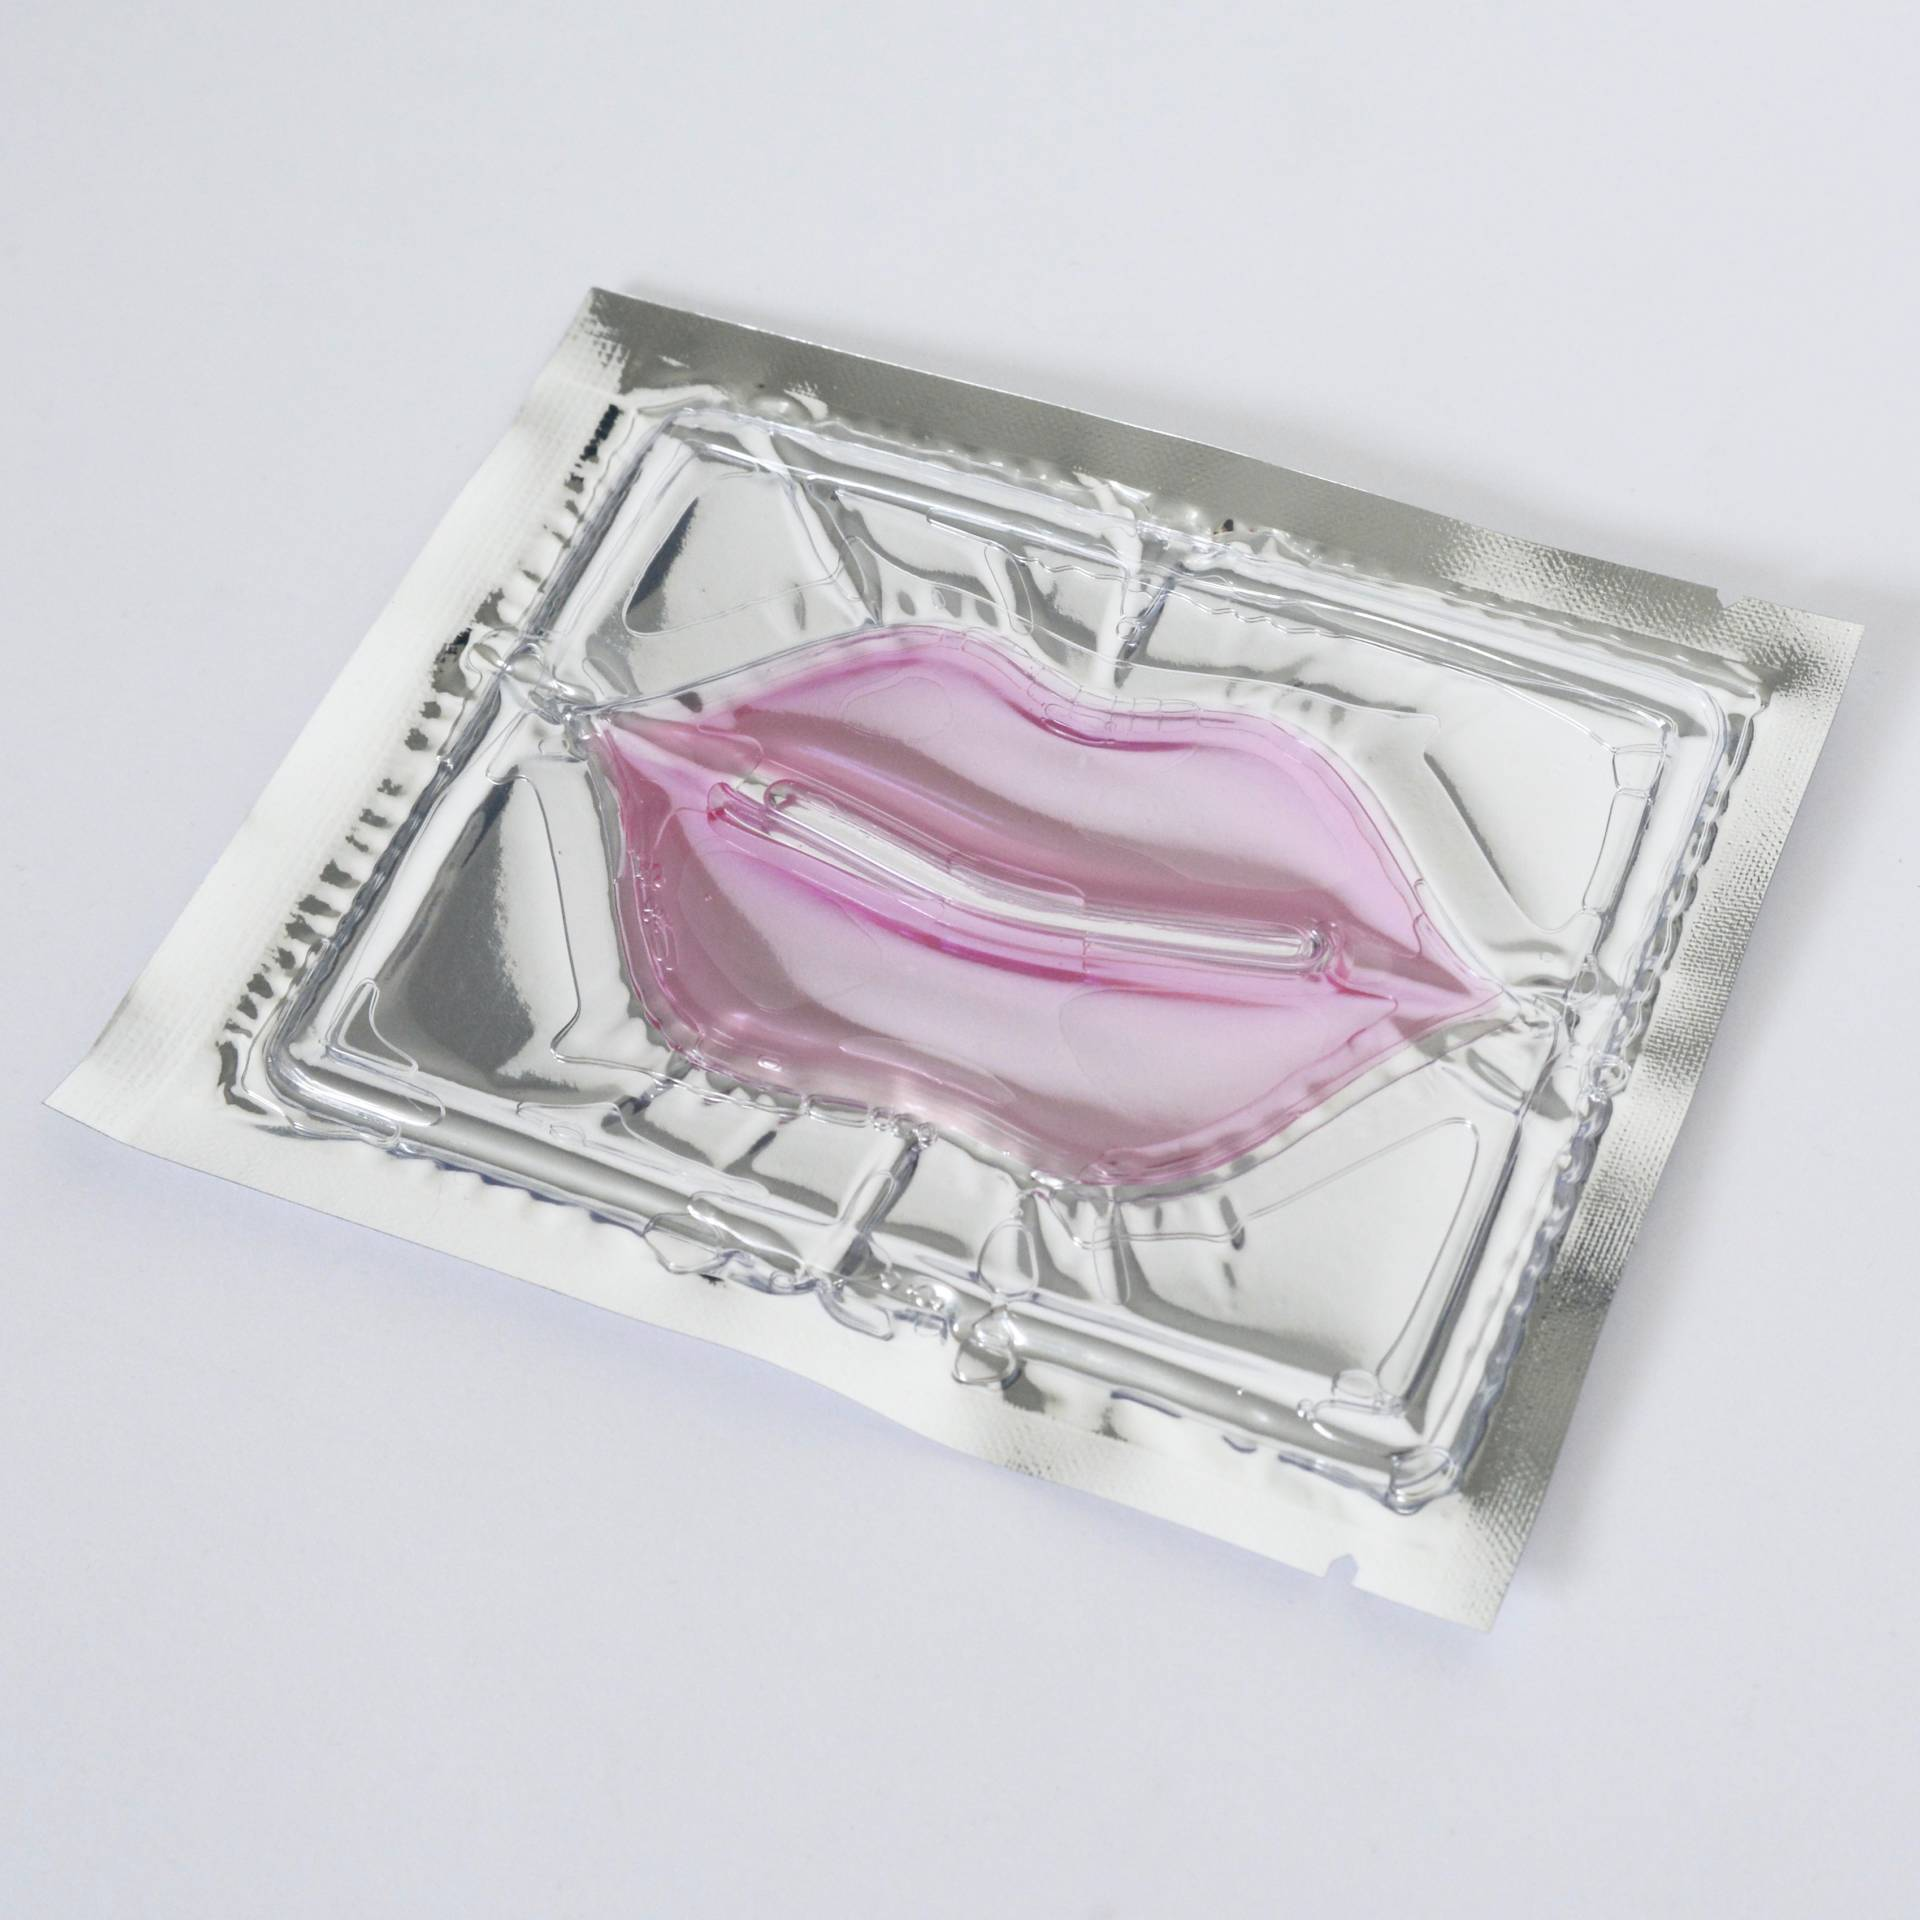 Next Generation Masks - A plumping lip mask...